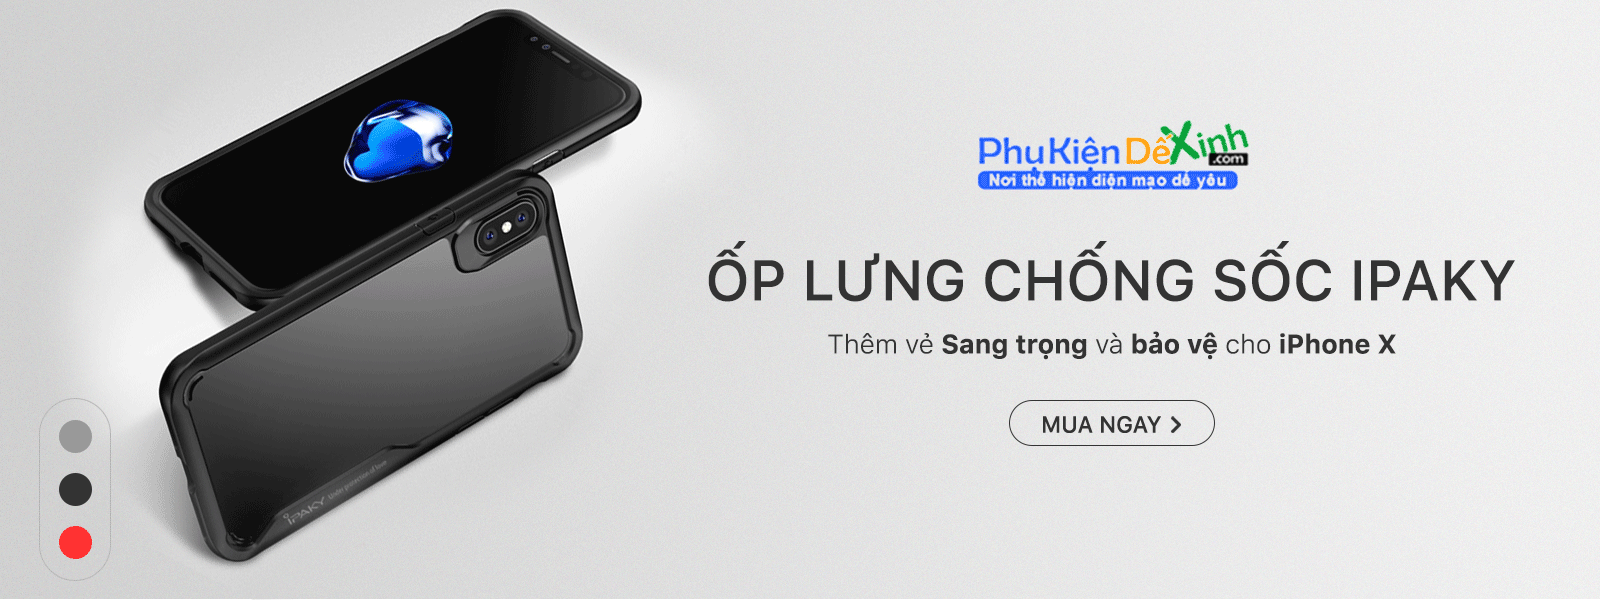 Ốp lưng chống sốc ipaky iphone x